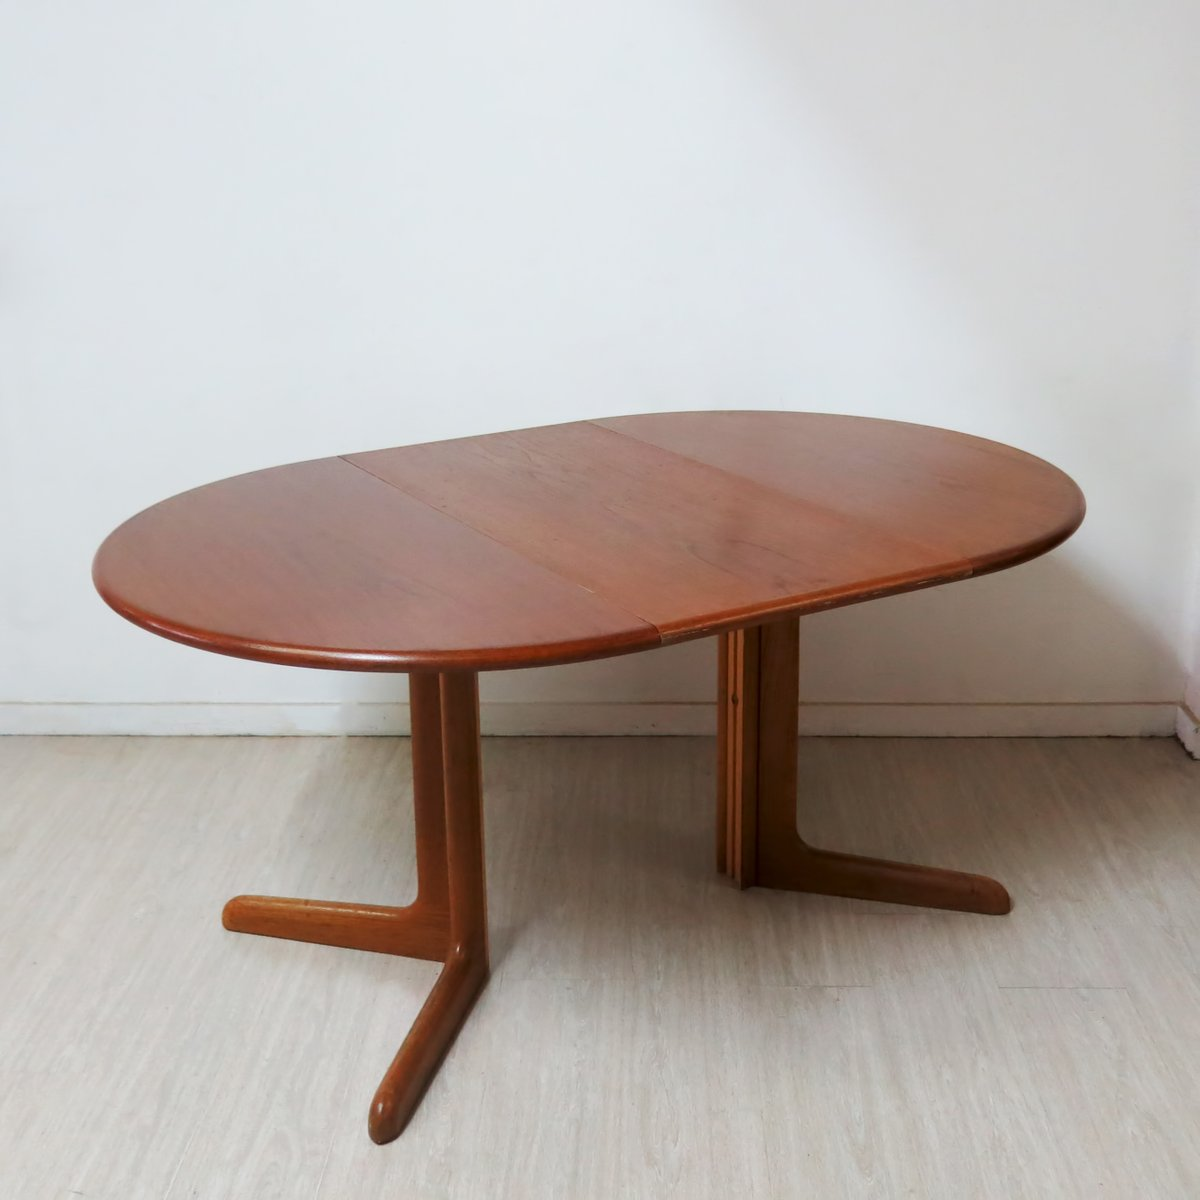 Teak Dining Table By Niels Moller 1960s For Sale At Pamono